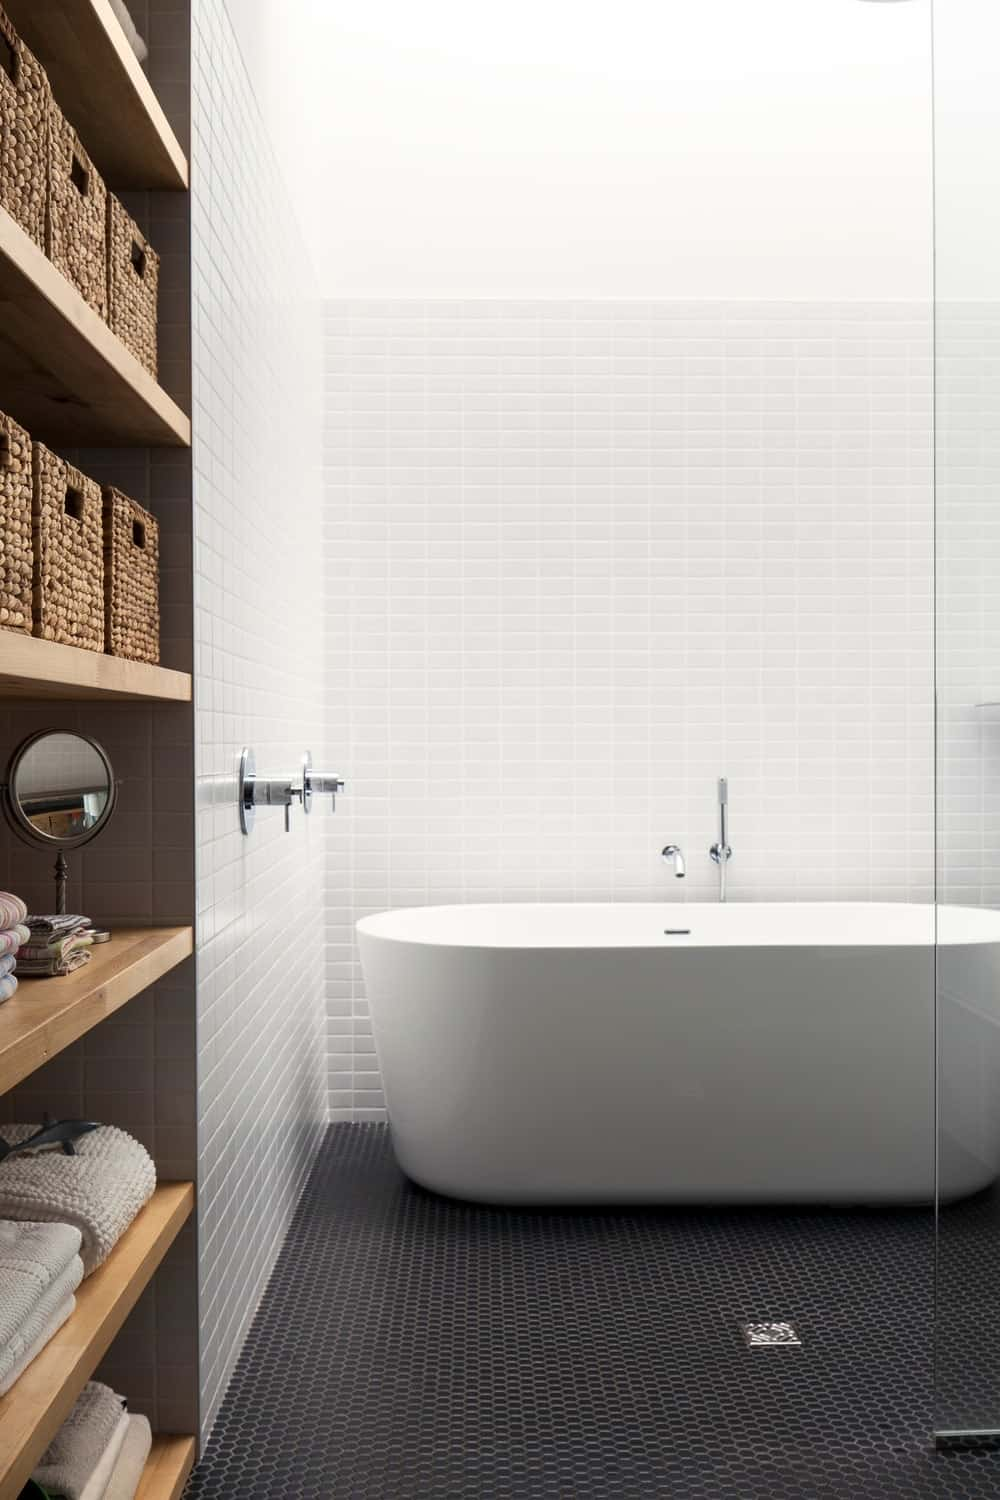 The bathroom boasts a very stylish tiles flooring perfectly blended by white walls. Photo Credit: Maxime Brouillet